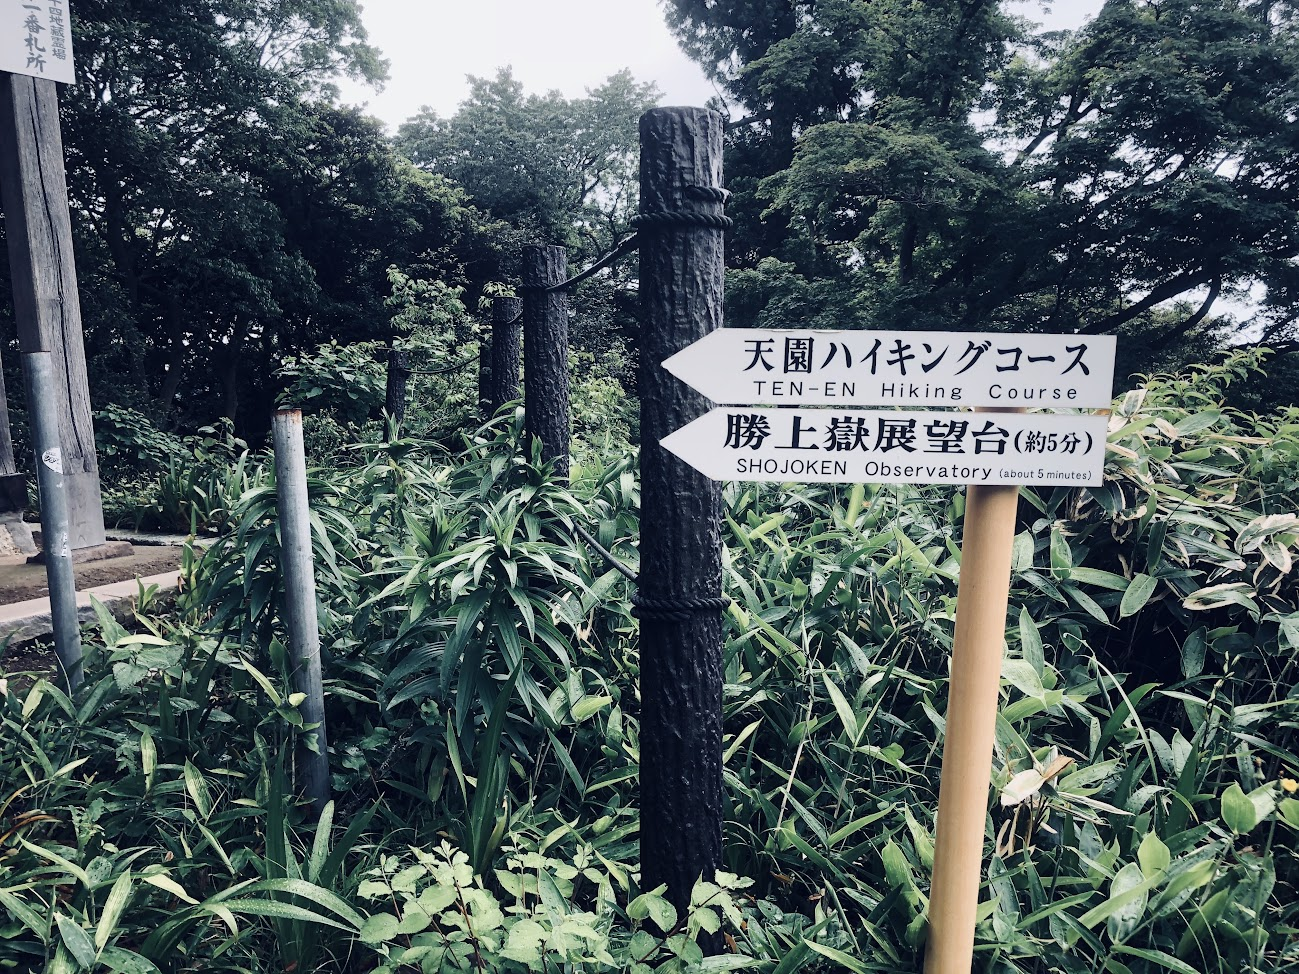 the signs of Tenen-Hiking course